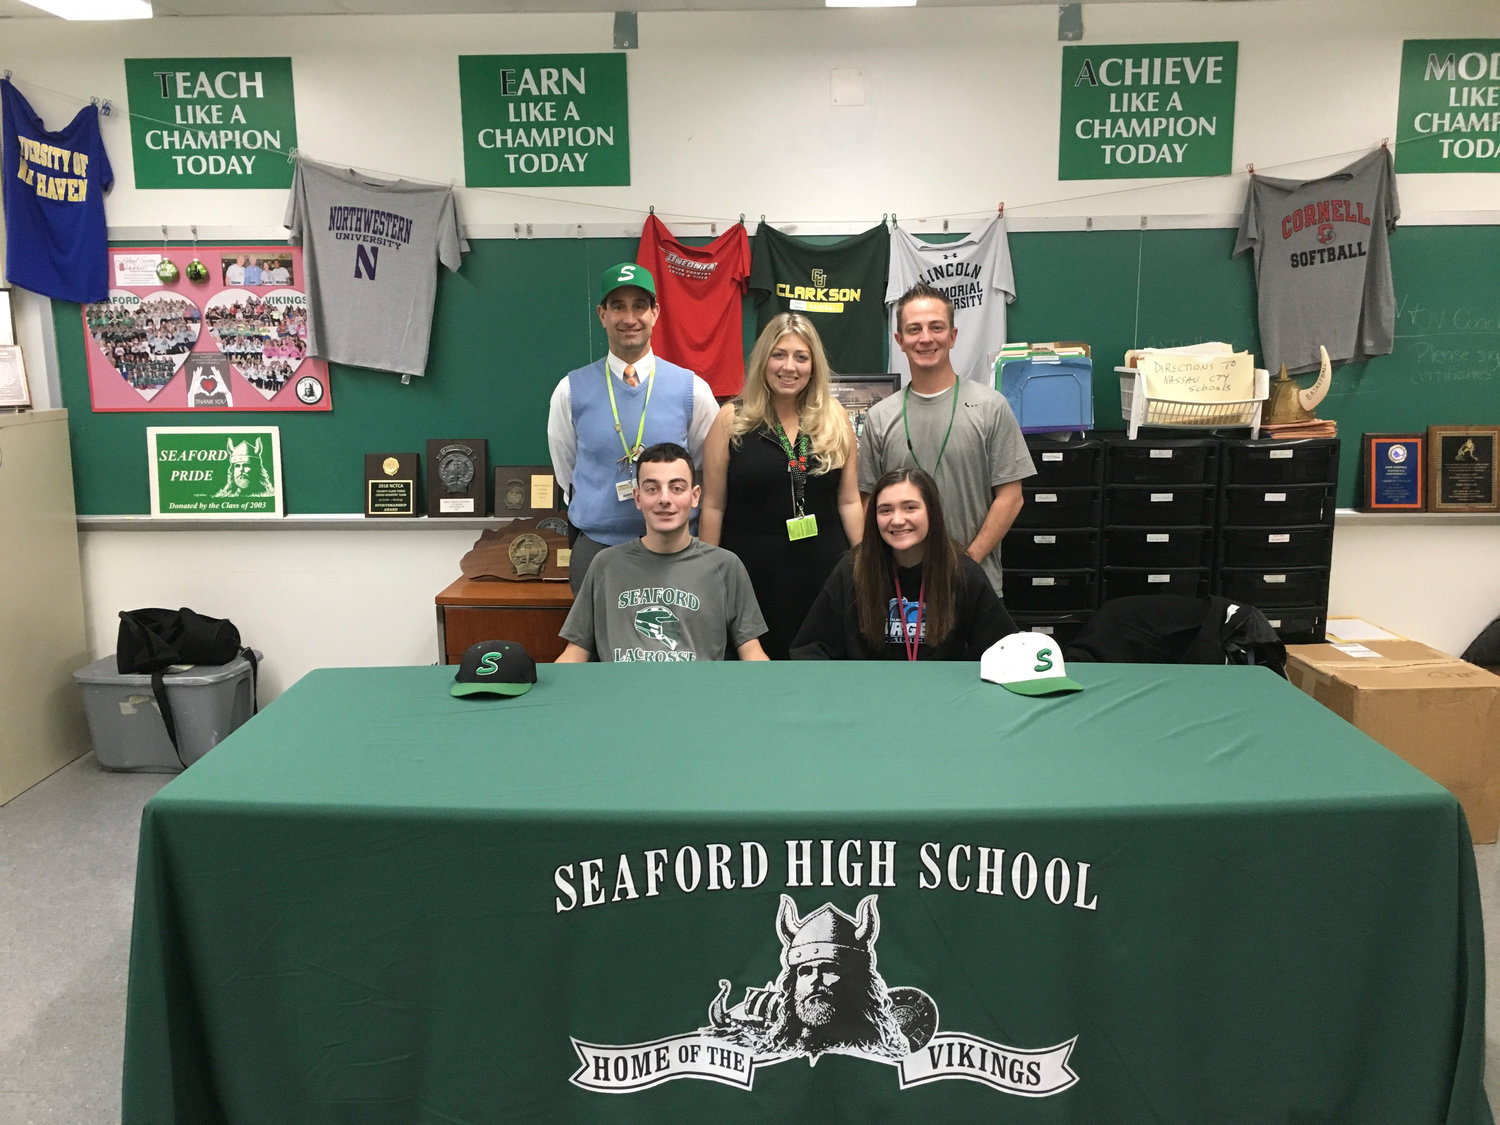 Seaford High School Senior Max Pedone, bottom left, and Junior Paige Donovan, bottom right, are supported by Seaford High School Principal Scott Bersin, left rear; Assistant Principal Nicole Schnabel, center; and Director of Athletics Michael Spreckels.